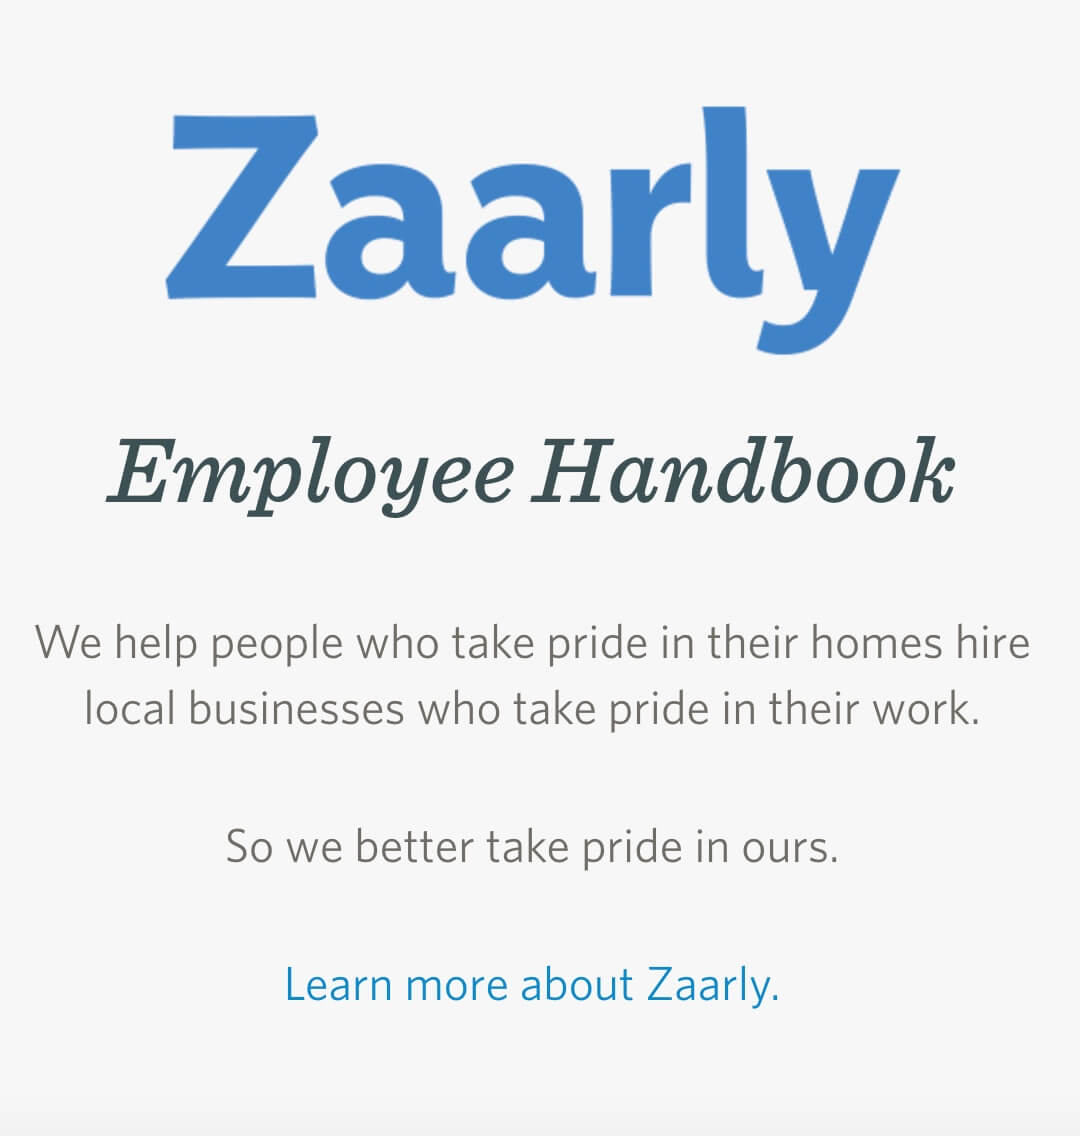 Zaarlys Employee Handbook Looks A Lot Like Sterlings Culture Code Designed On Webpage With Lots Of Color Not Too Much Text And Spaced Out Nicely So